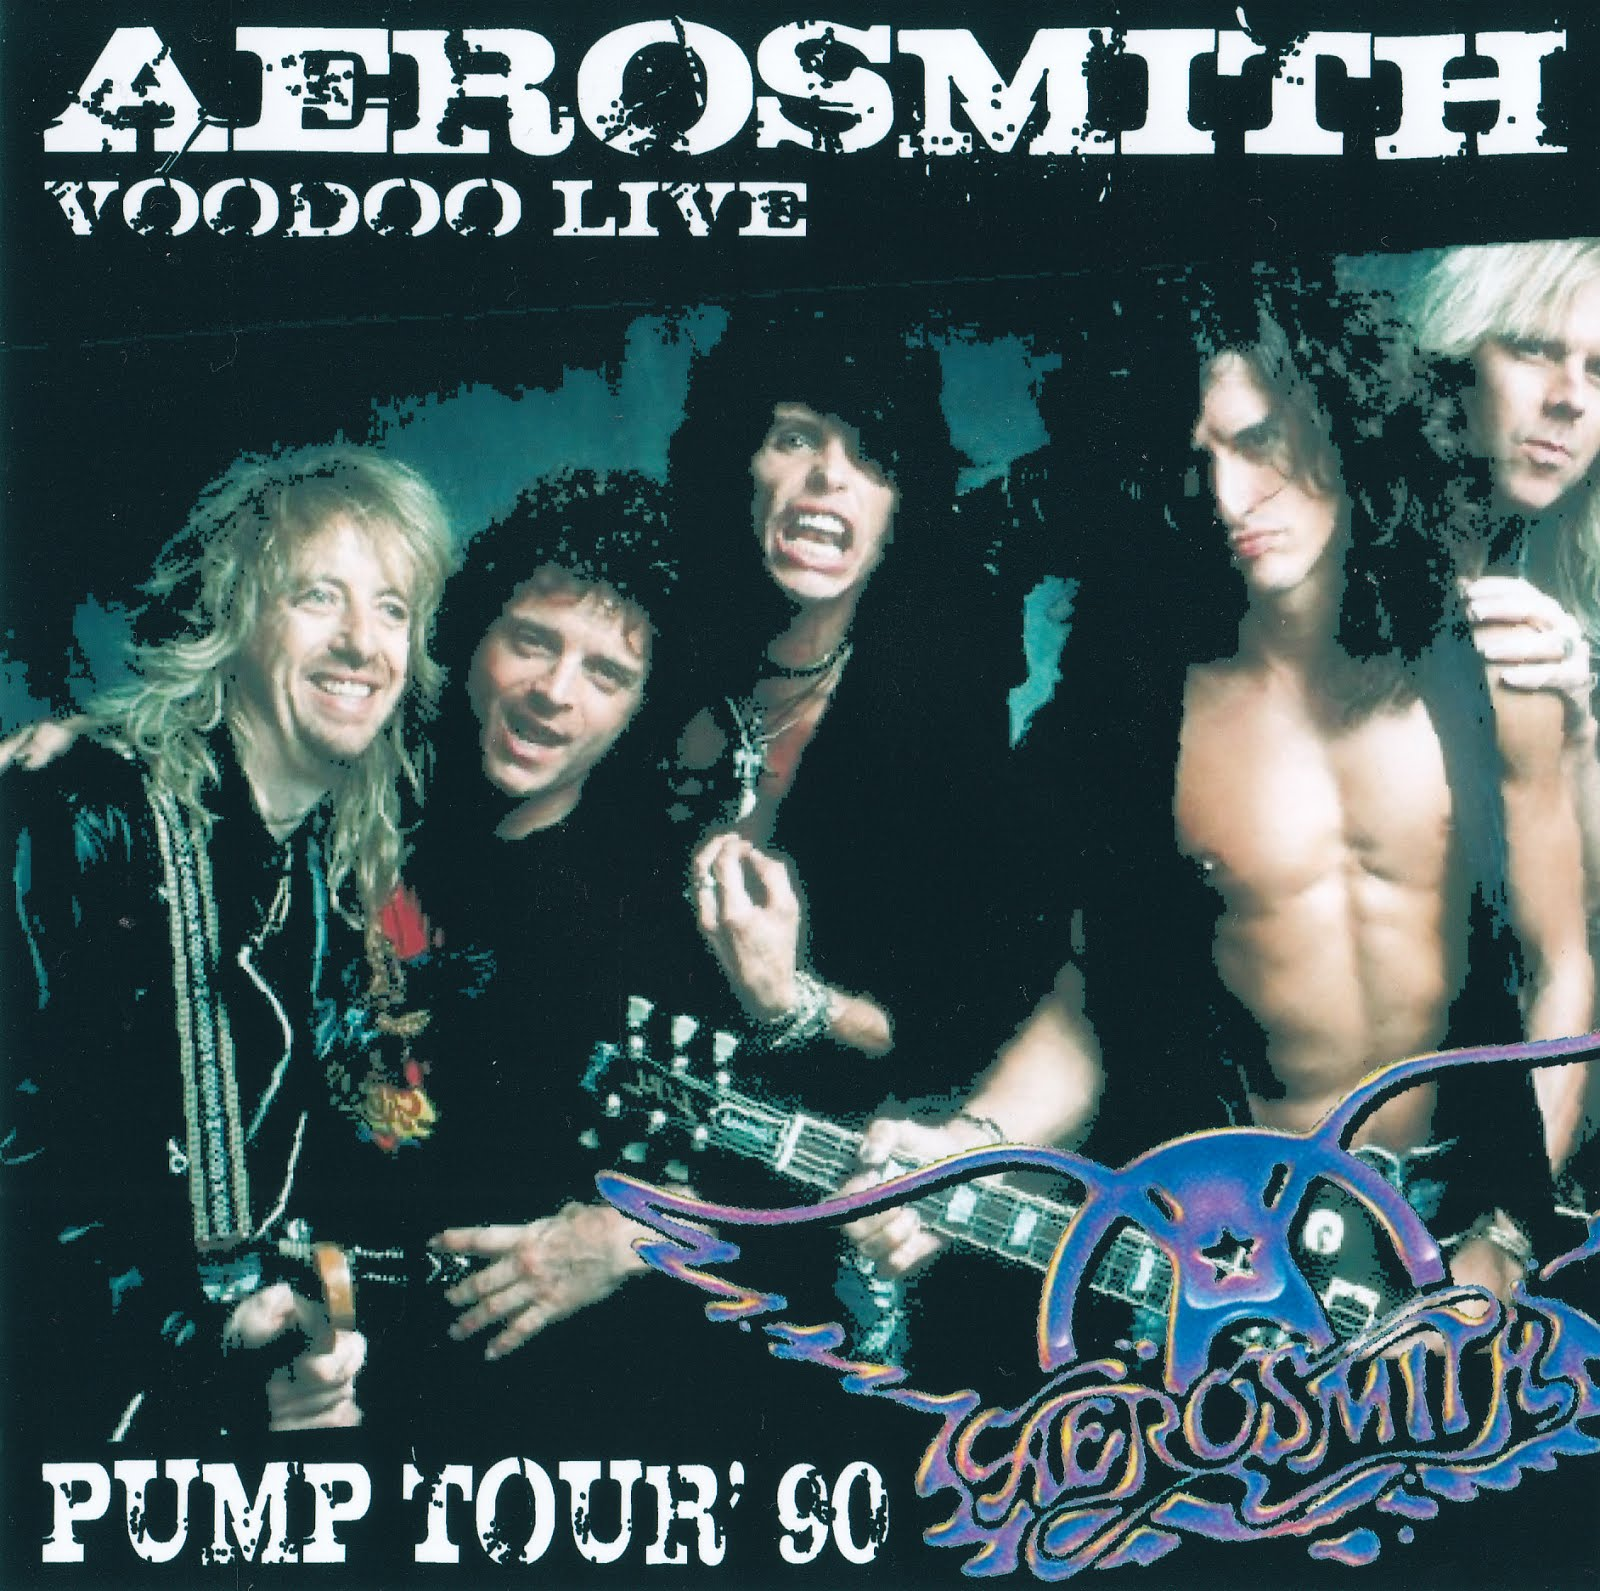 Aerosmith Bootlegs Cover Arts Voodoo Live Peoria 1990